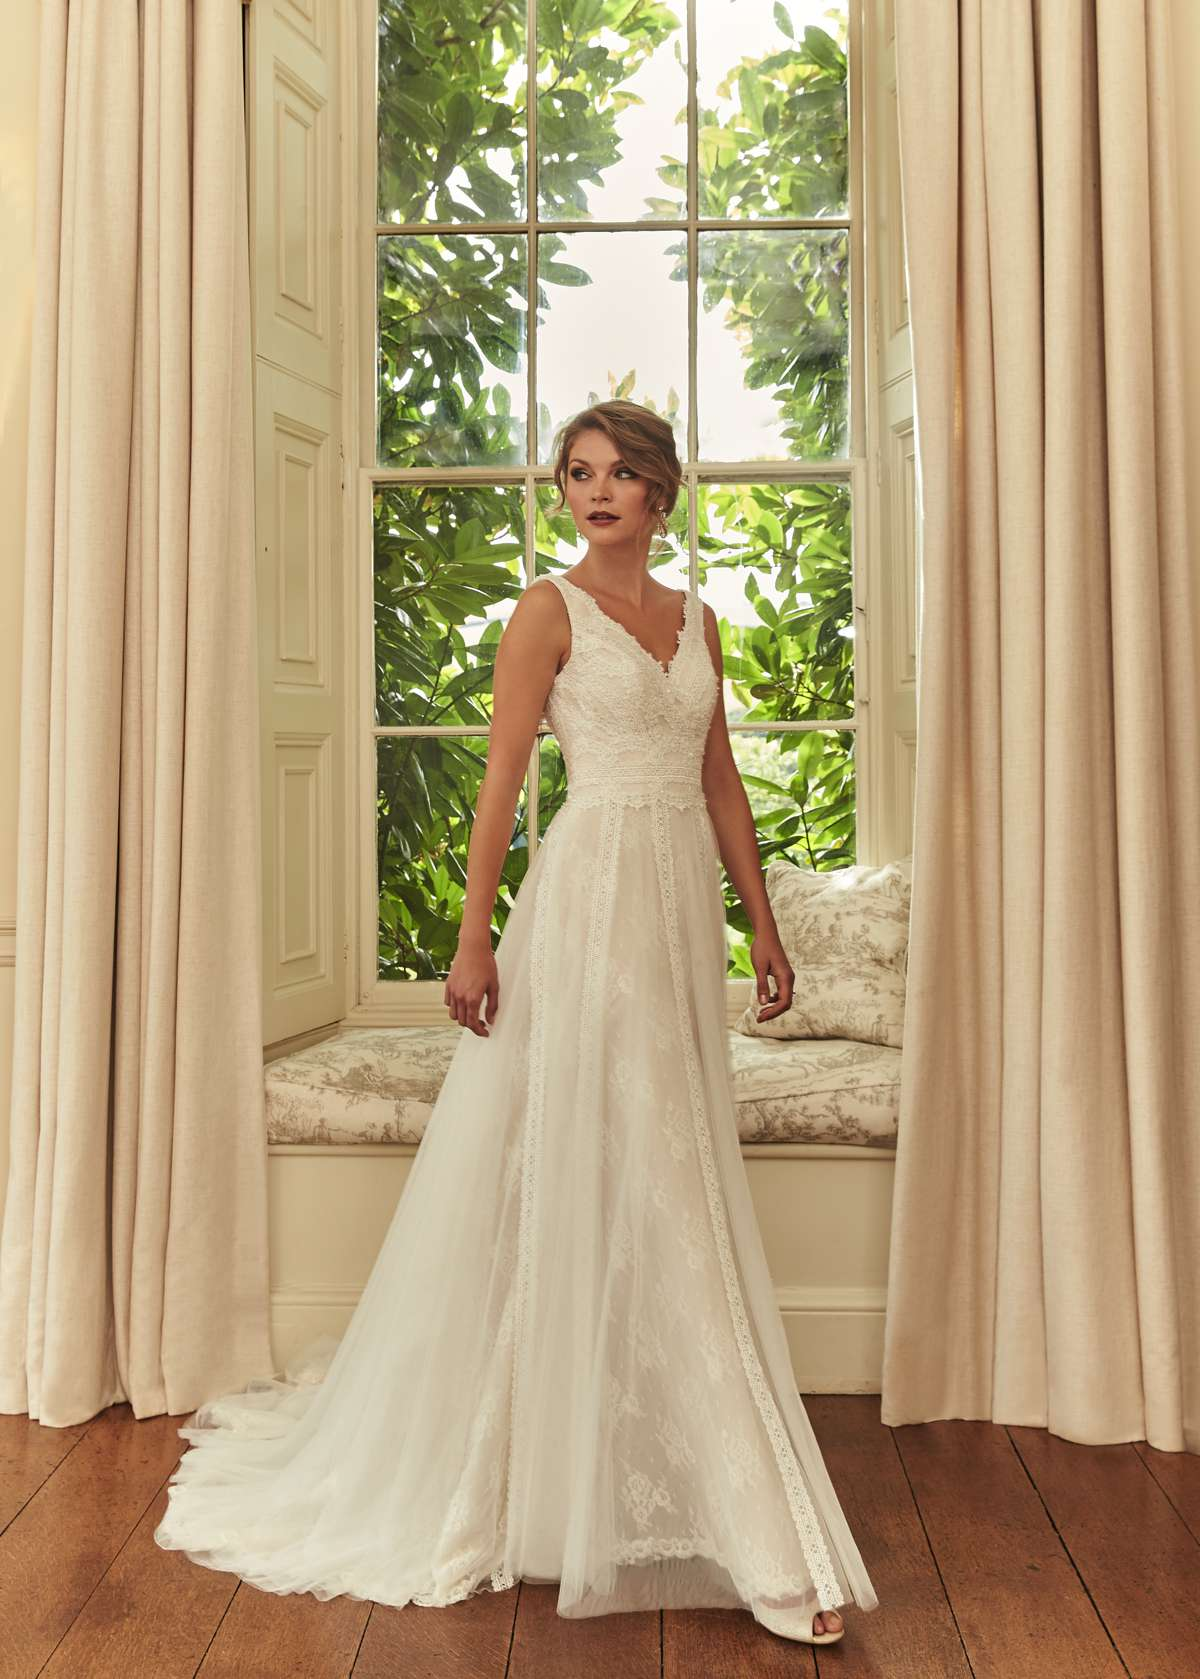 6cca7c8ce063 Berta by Opulence Bridal - Find Your Dream Dress